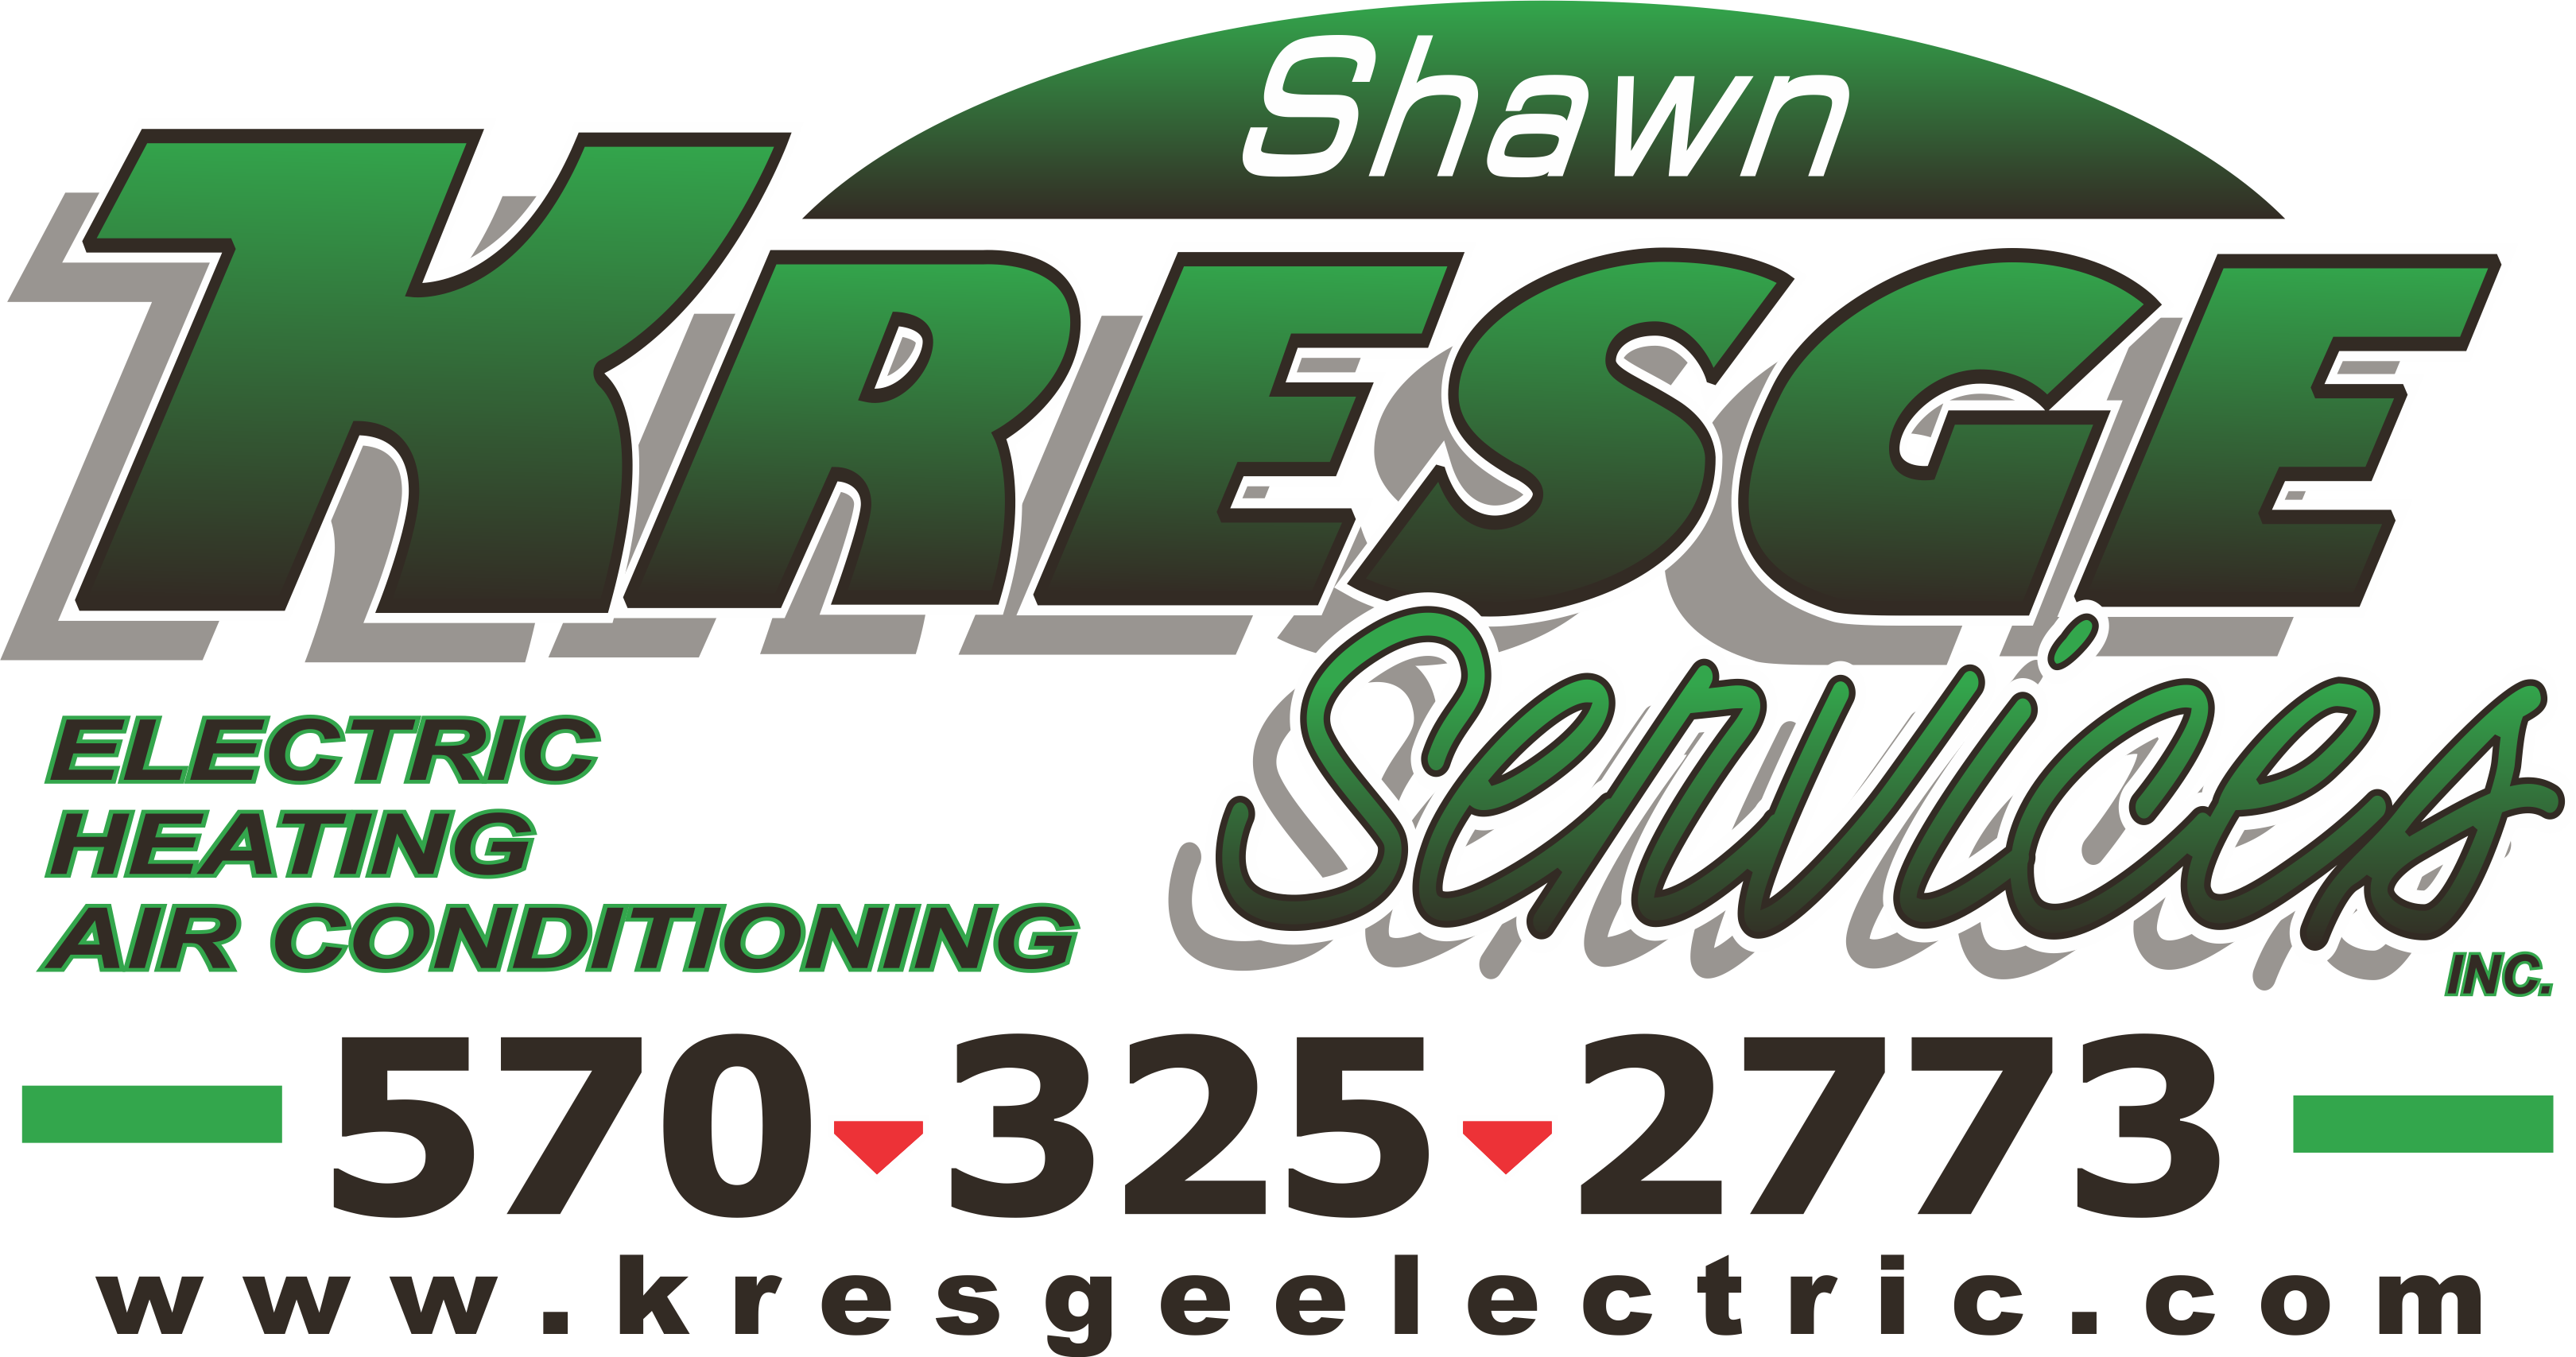 Call Shawn Kresge Electric, Heating & AC for reliable Furnace repair in Jim Thorpe PA